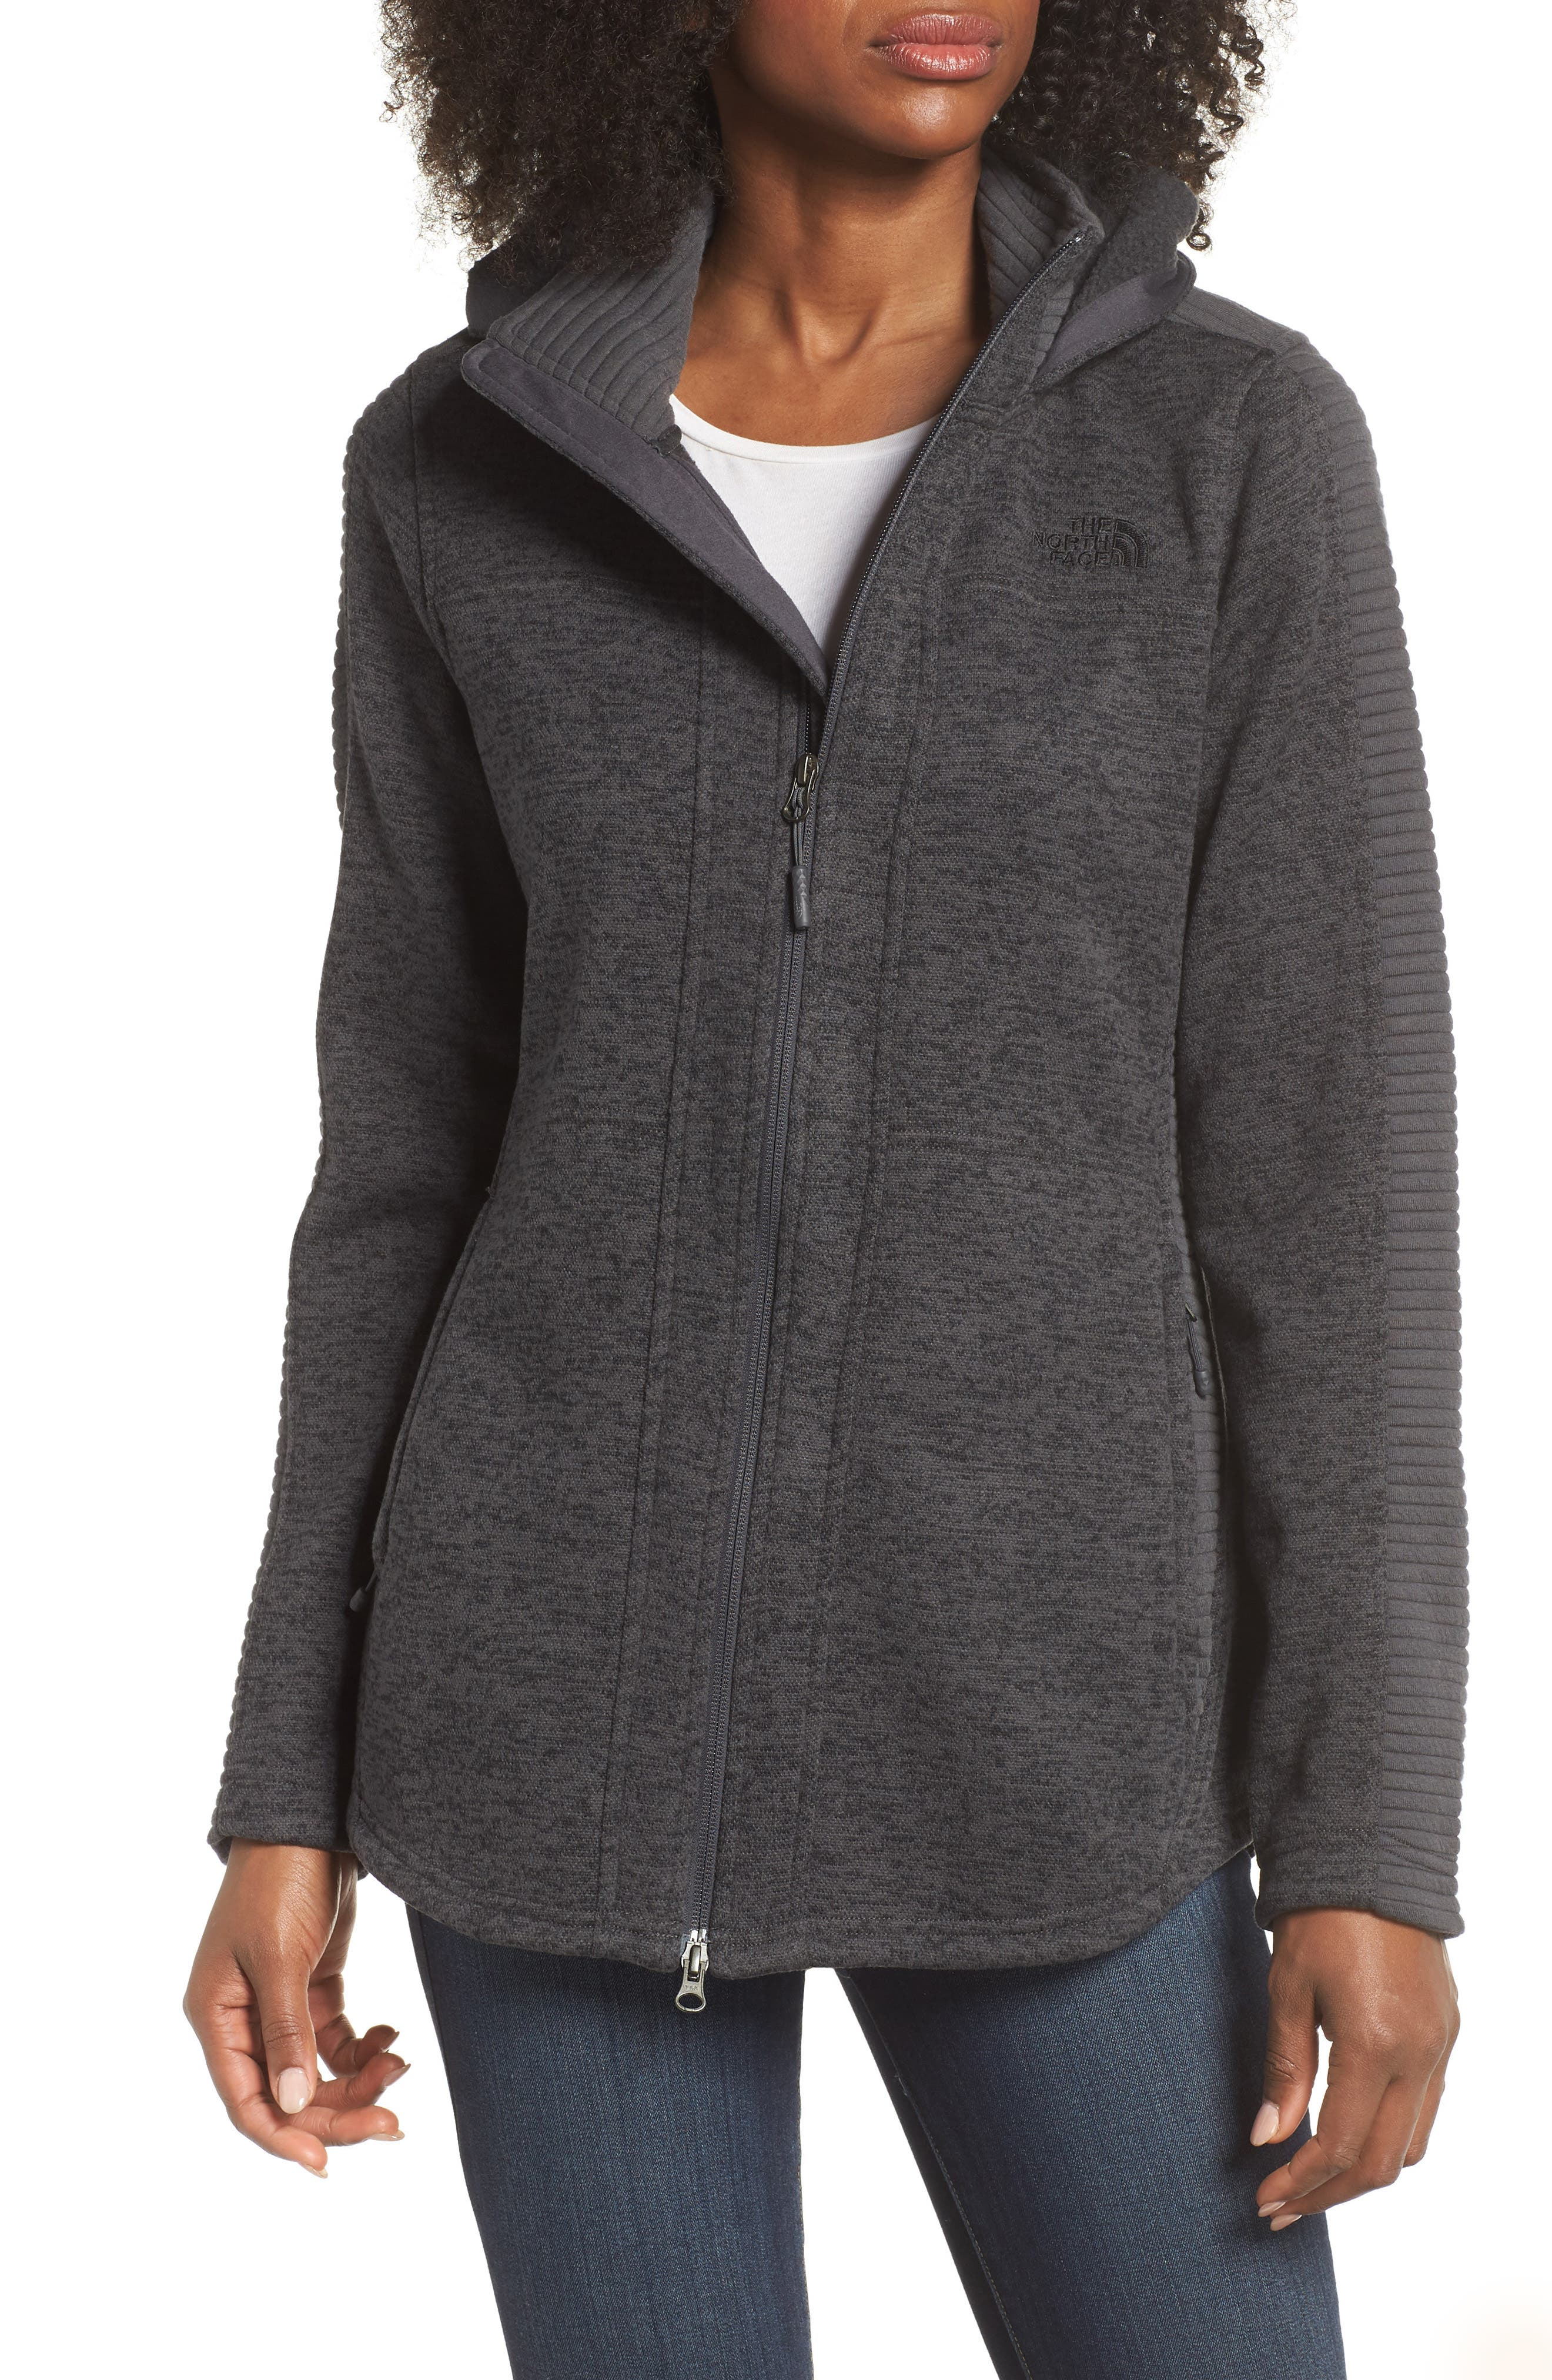 Indi 2 Hooded Knit Parka,                         Main,                         color, Dark Grey Heather